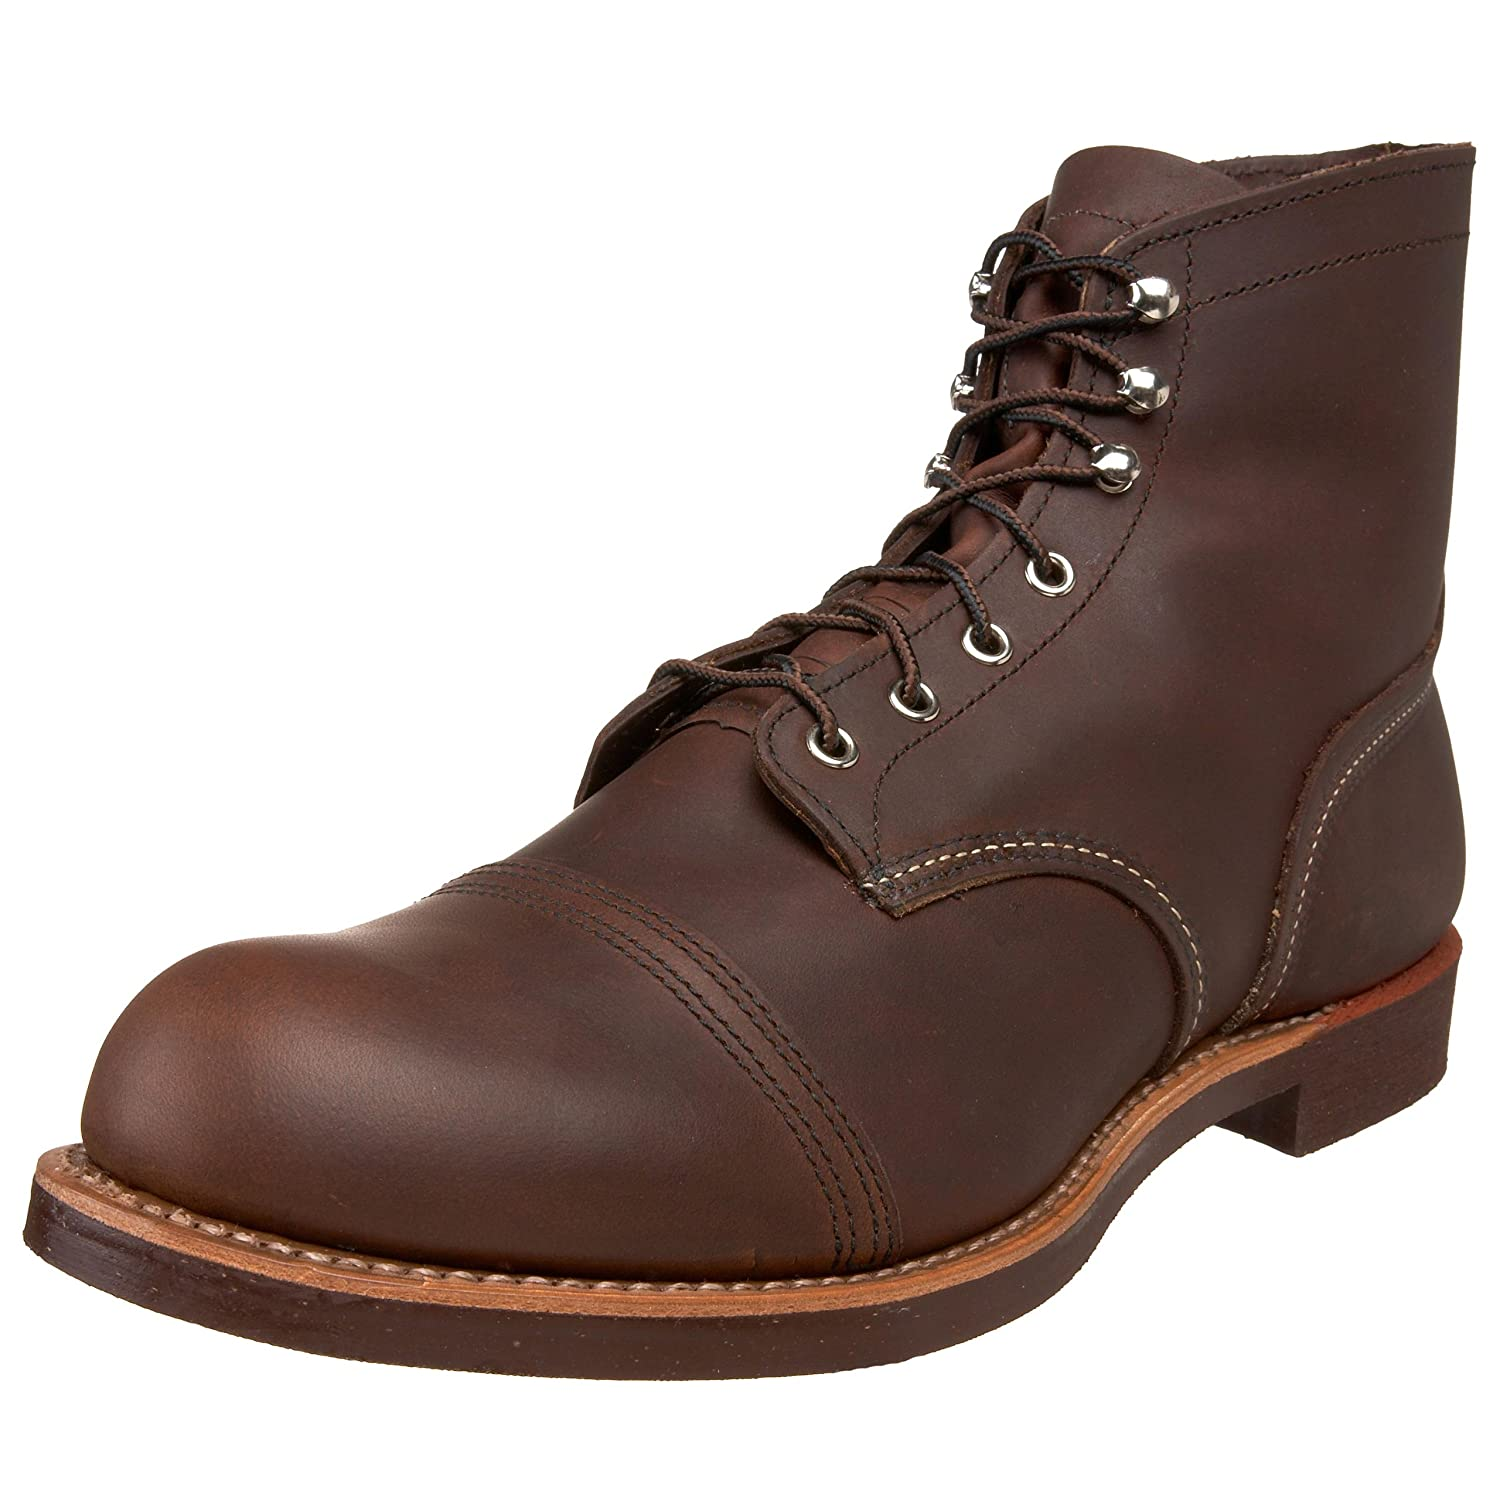 1910s Men's Edwardian Fashion and Clothing Guide Red Wing Heritage Iron Ranger 6-Inch Boot $239.96 AT vintagedancer.com